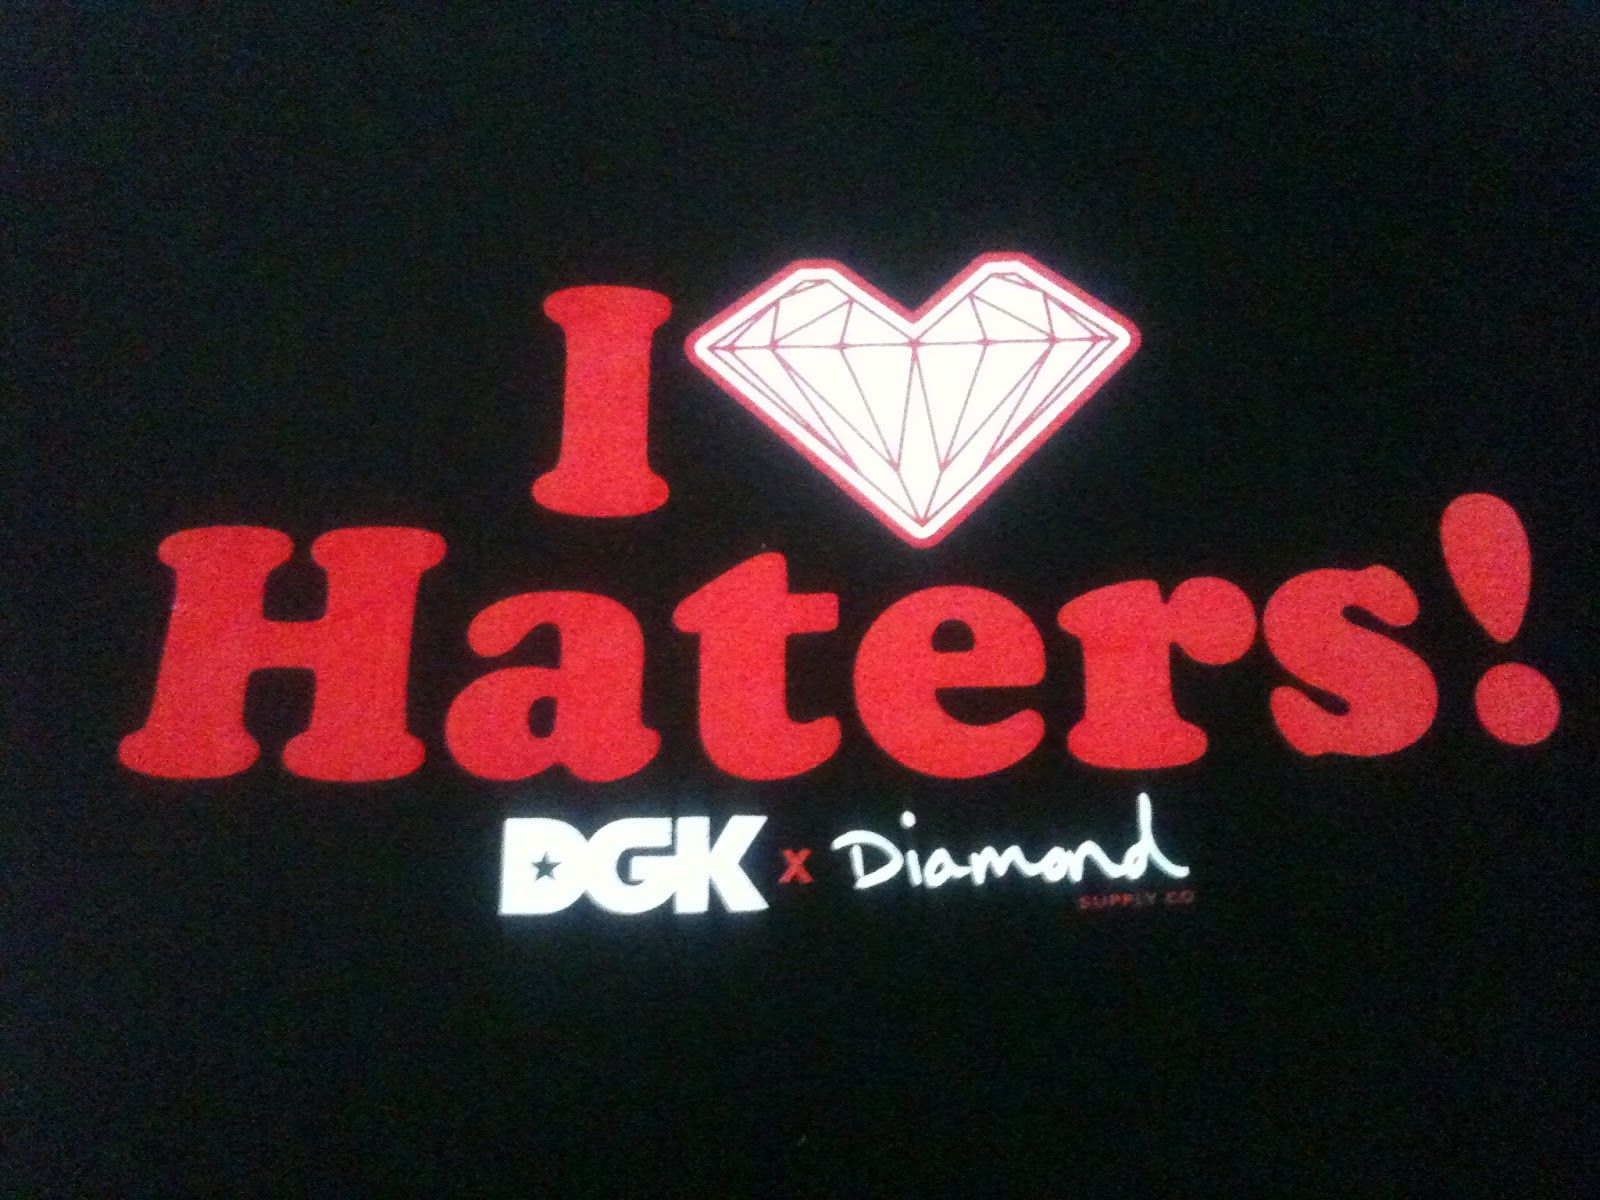 Wallpapers For Dgk Wallpaper I Love Haters 1600x1200